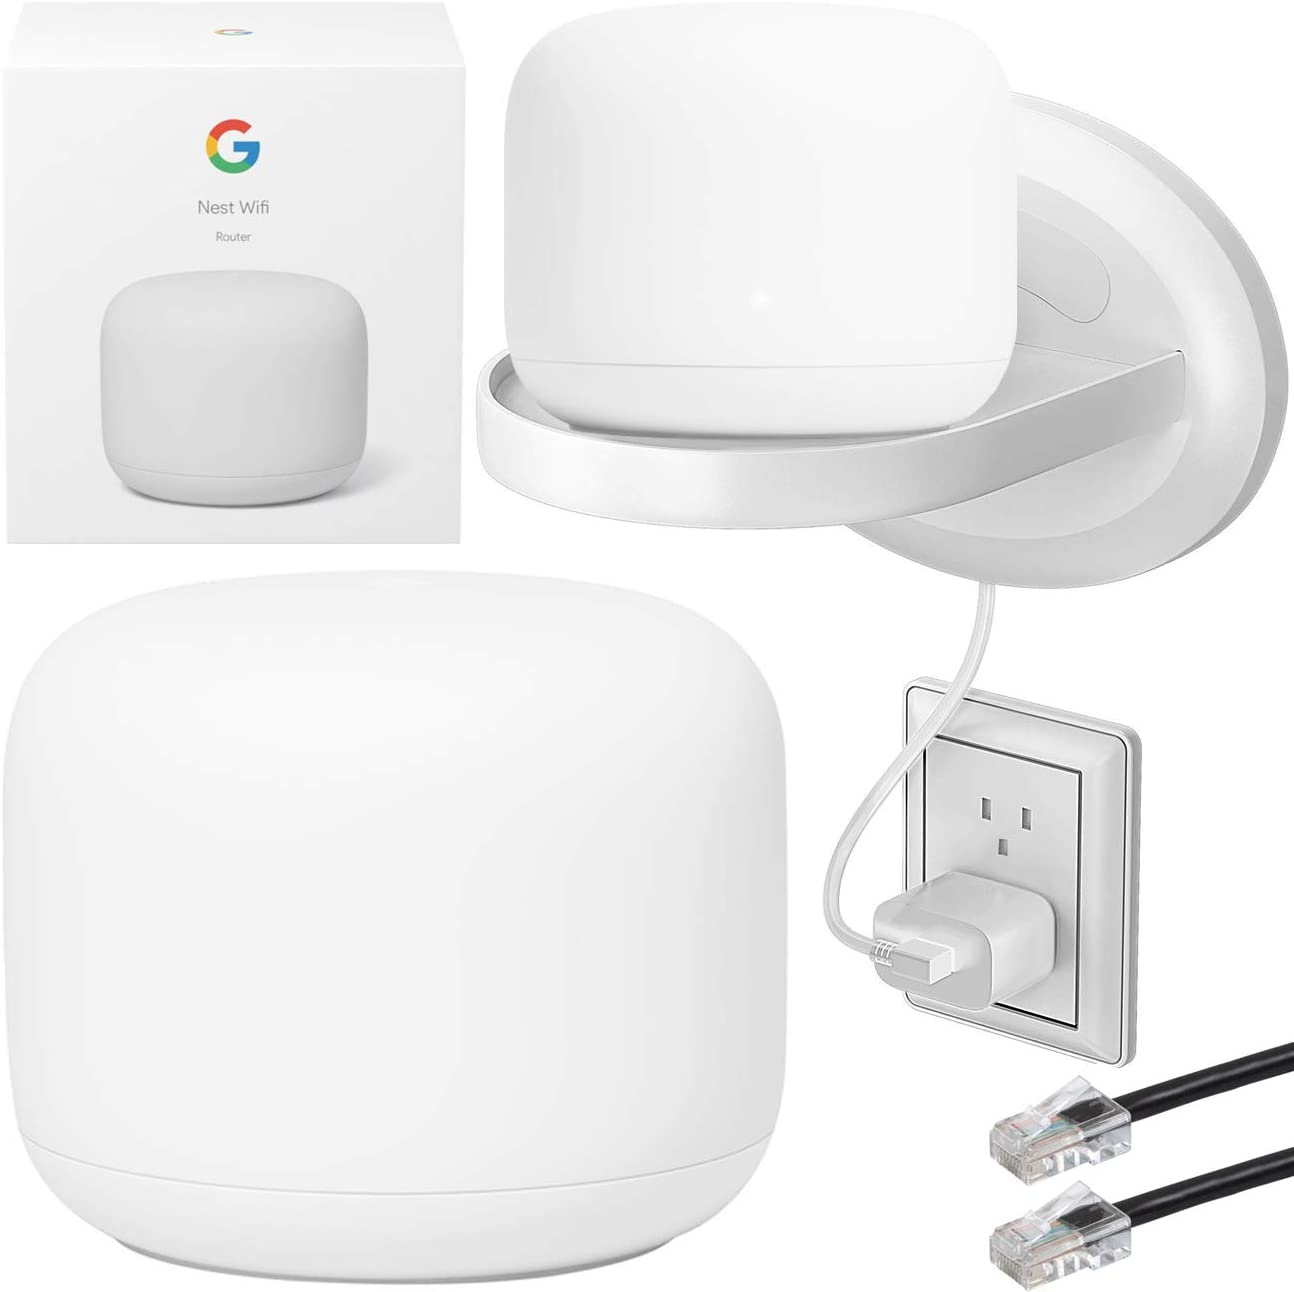 Google Nest WiFi Router Dual-Band Mesh Network GA00595-US (Snow) Up to 2200 sq. ft Bundle with Deco Gear Shelf Outlet Stand + Deco Gear 7ft Ethernet Patch Cable